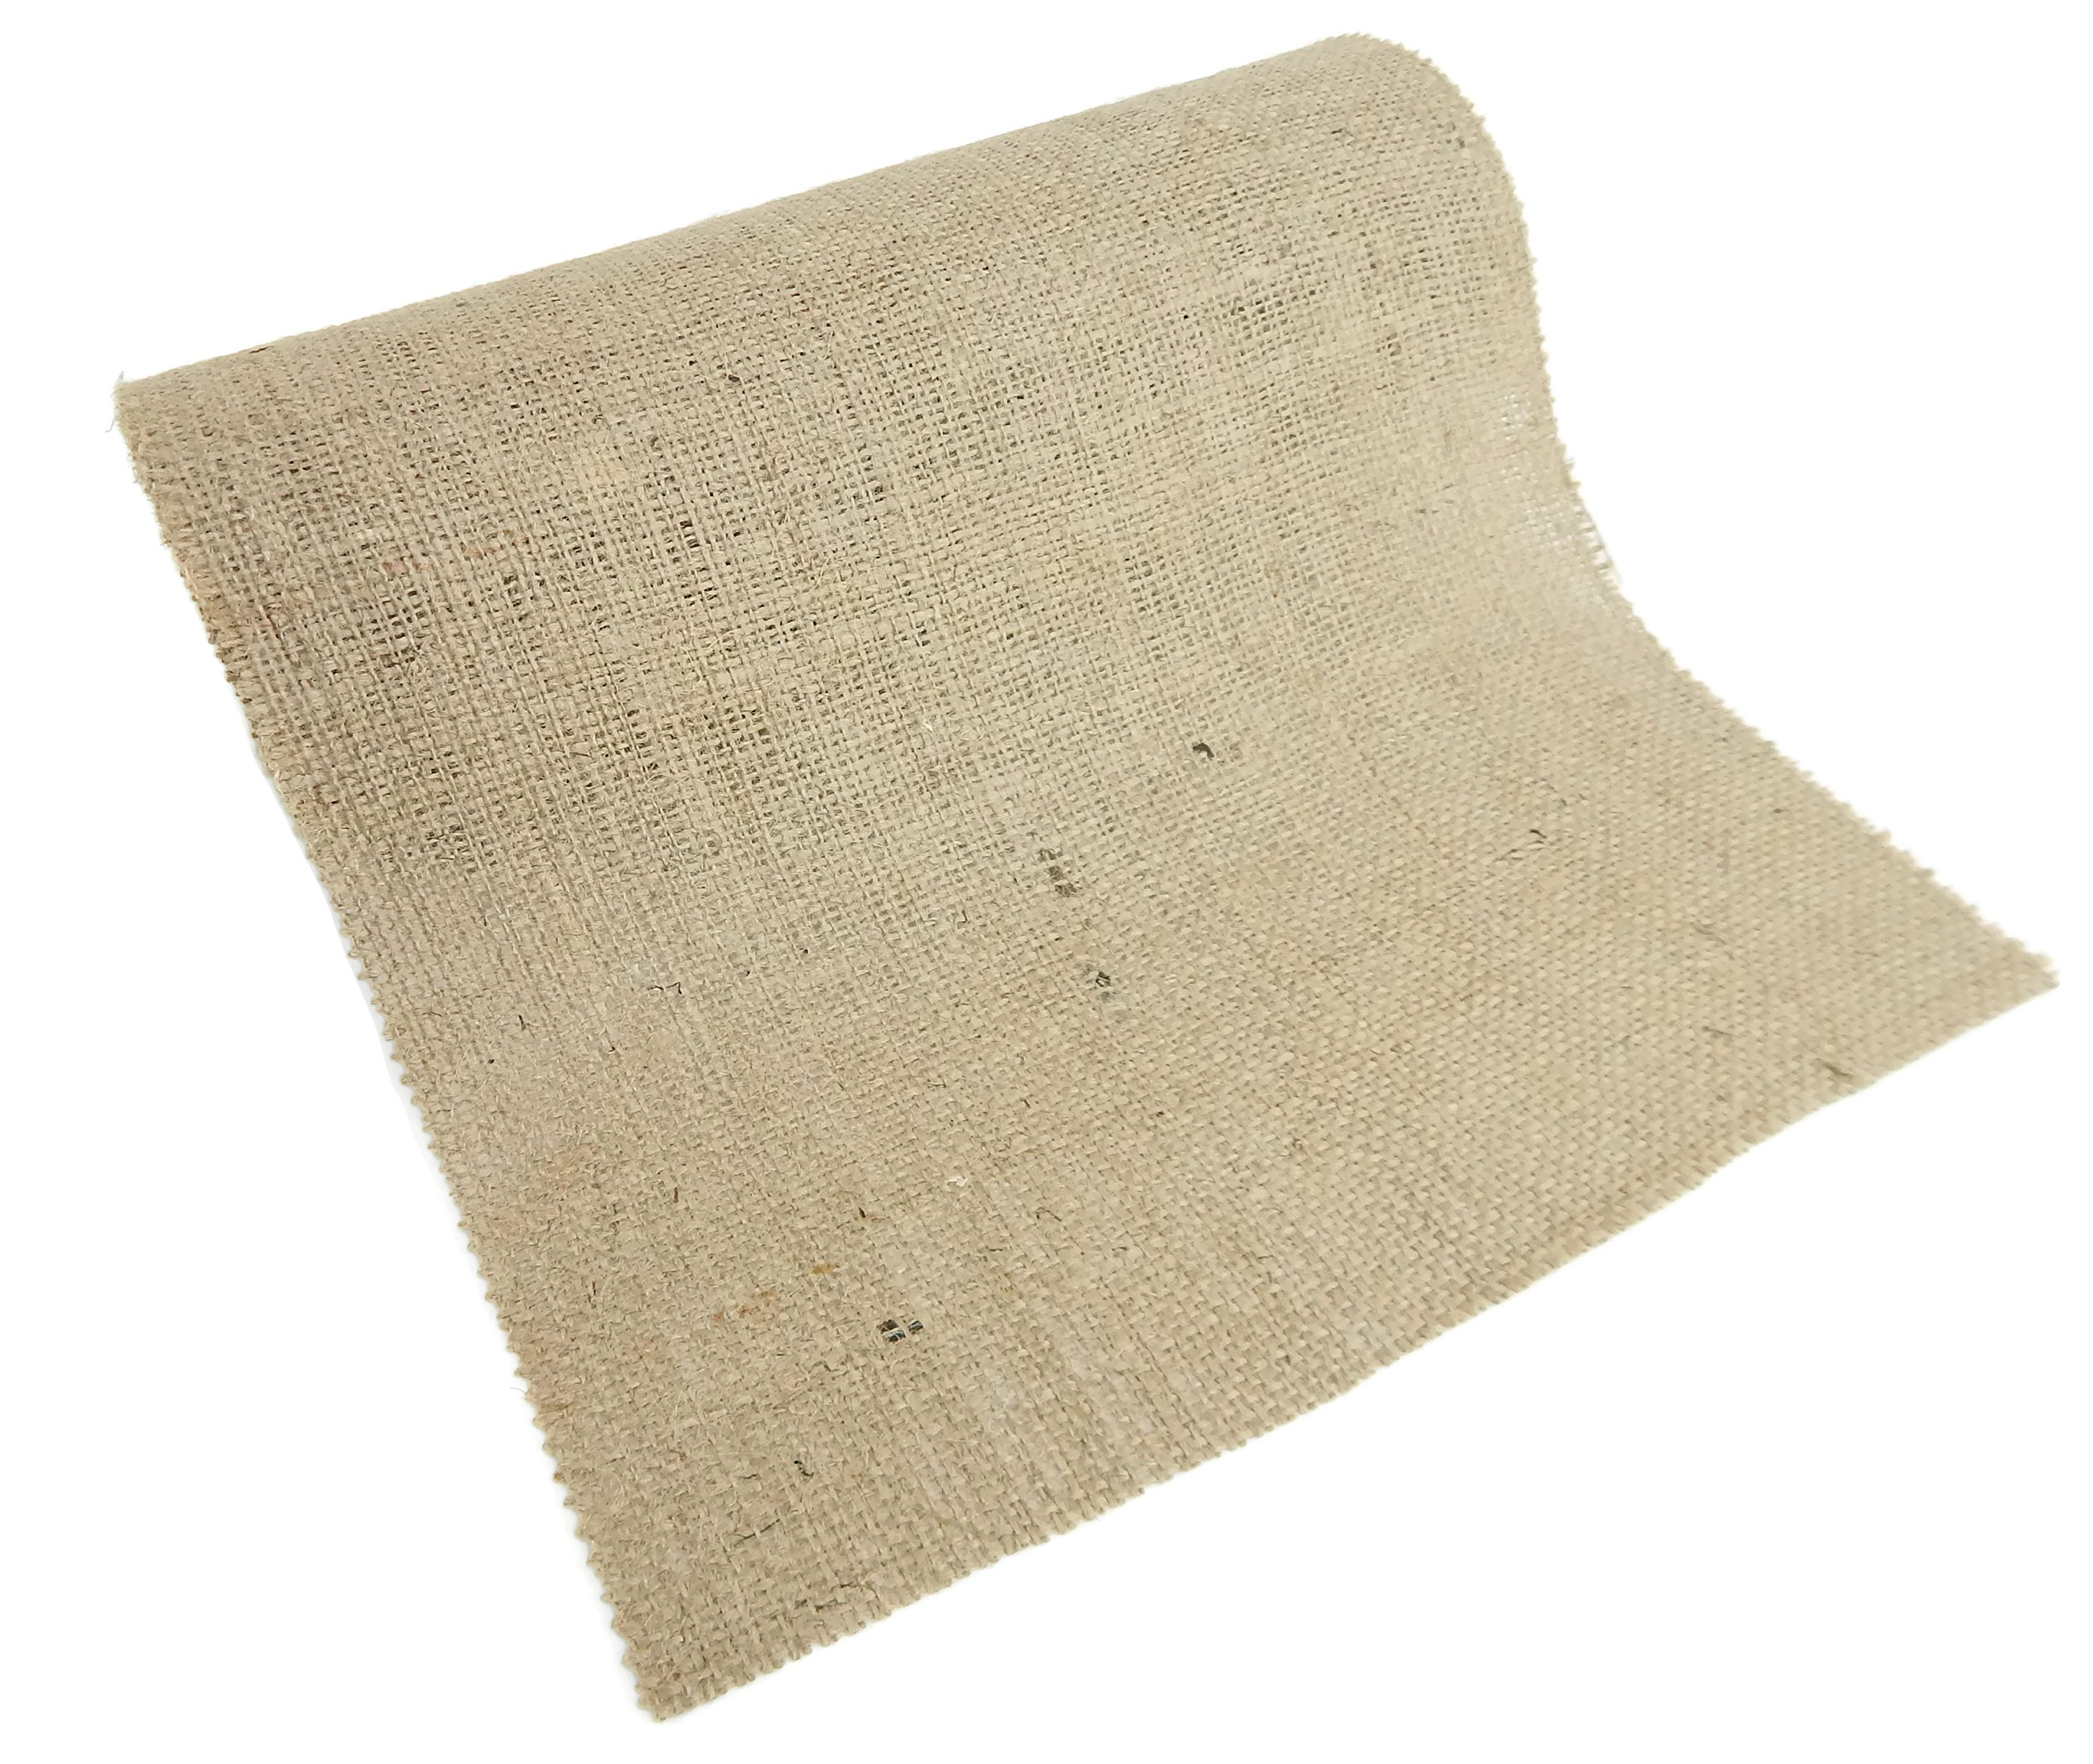 Burlap and Beyond 12'' Natural Burlap Roll - 50 Yards Eco-Friendly Jute Burlap Fabric Unfinished Edges 12 Inch by Burlap and Beyond (Image #3)